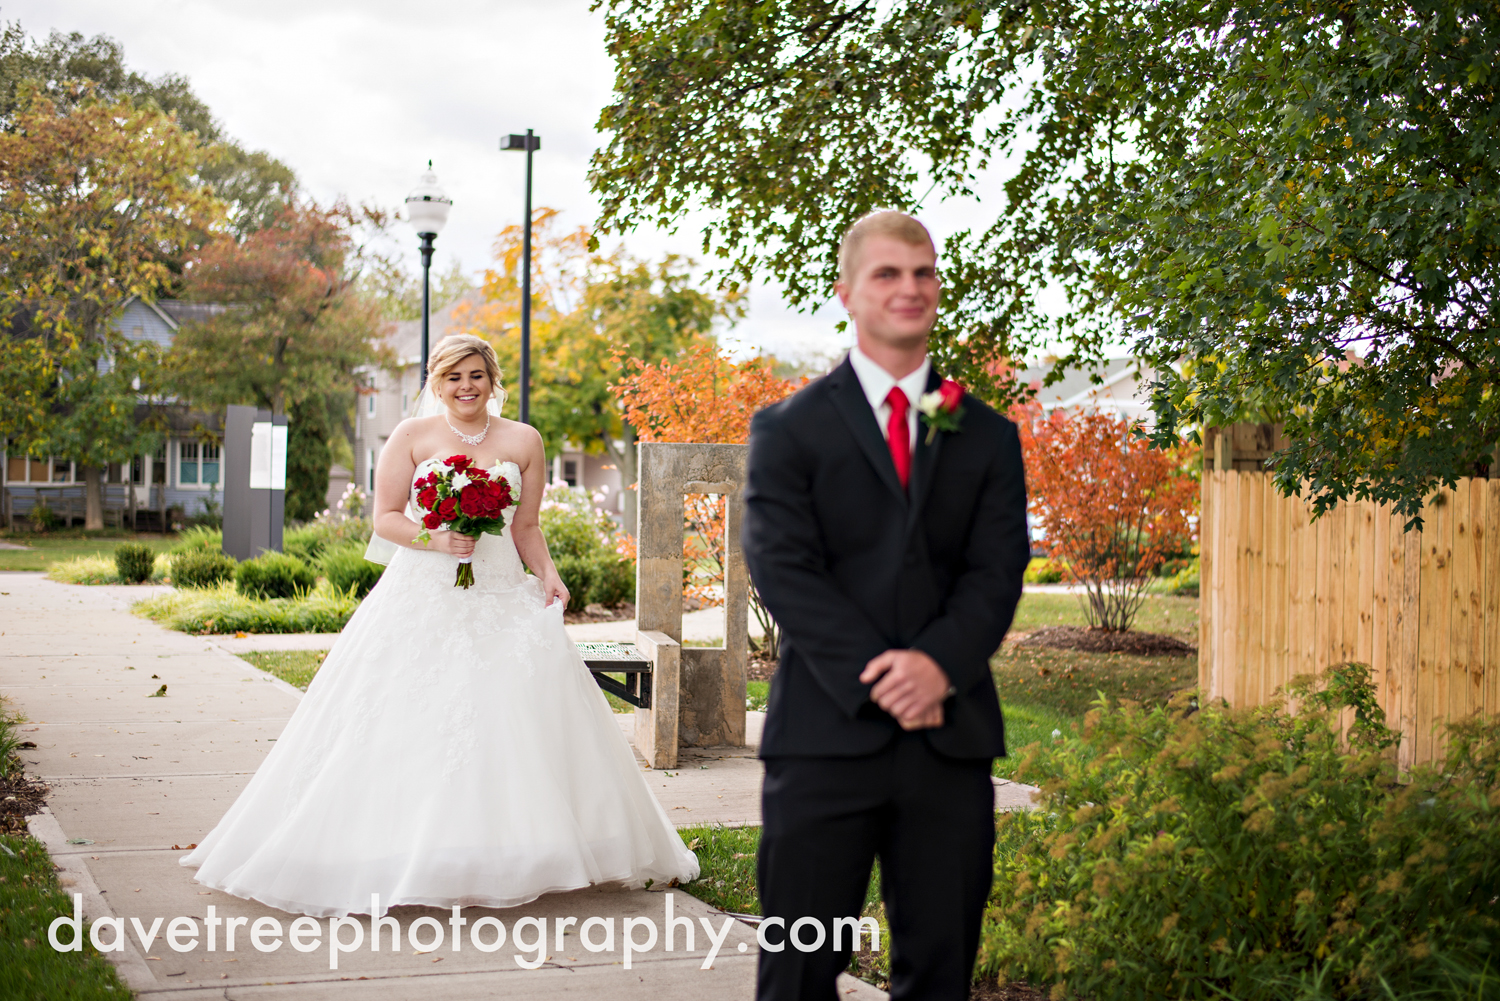 holland_wedding_photographer_81.jpg